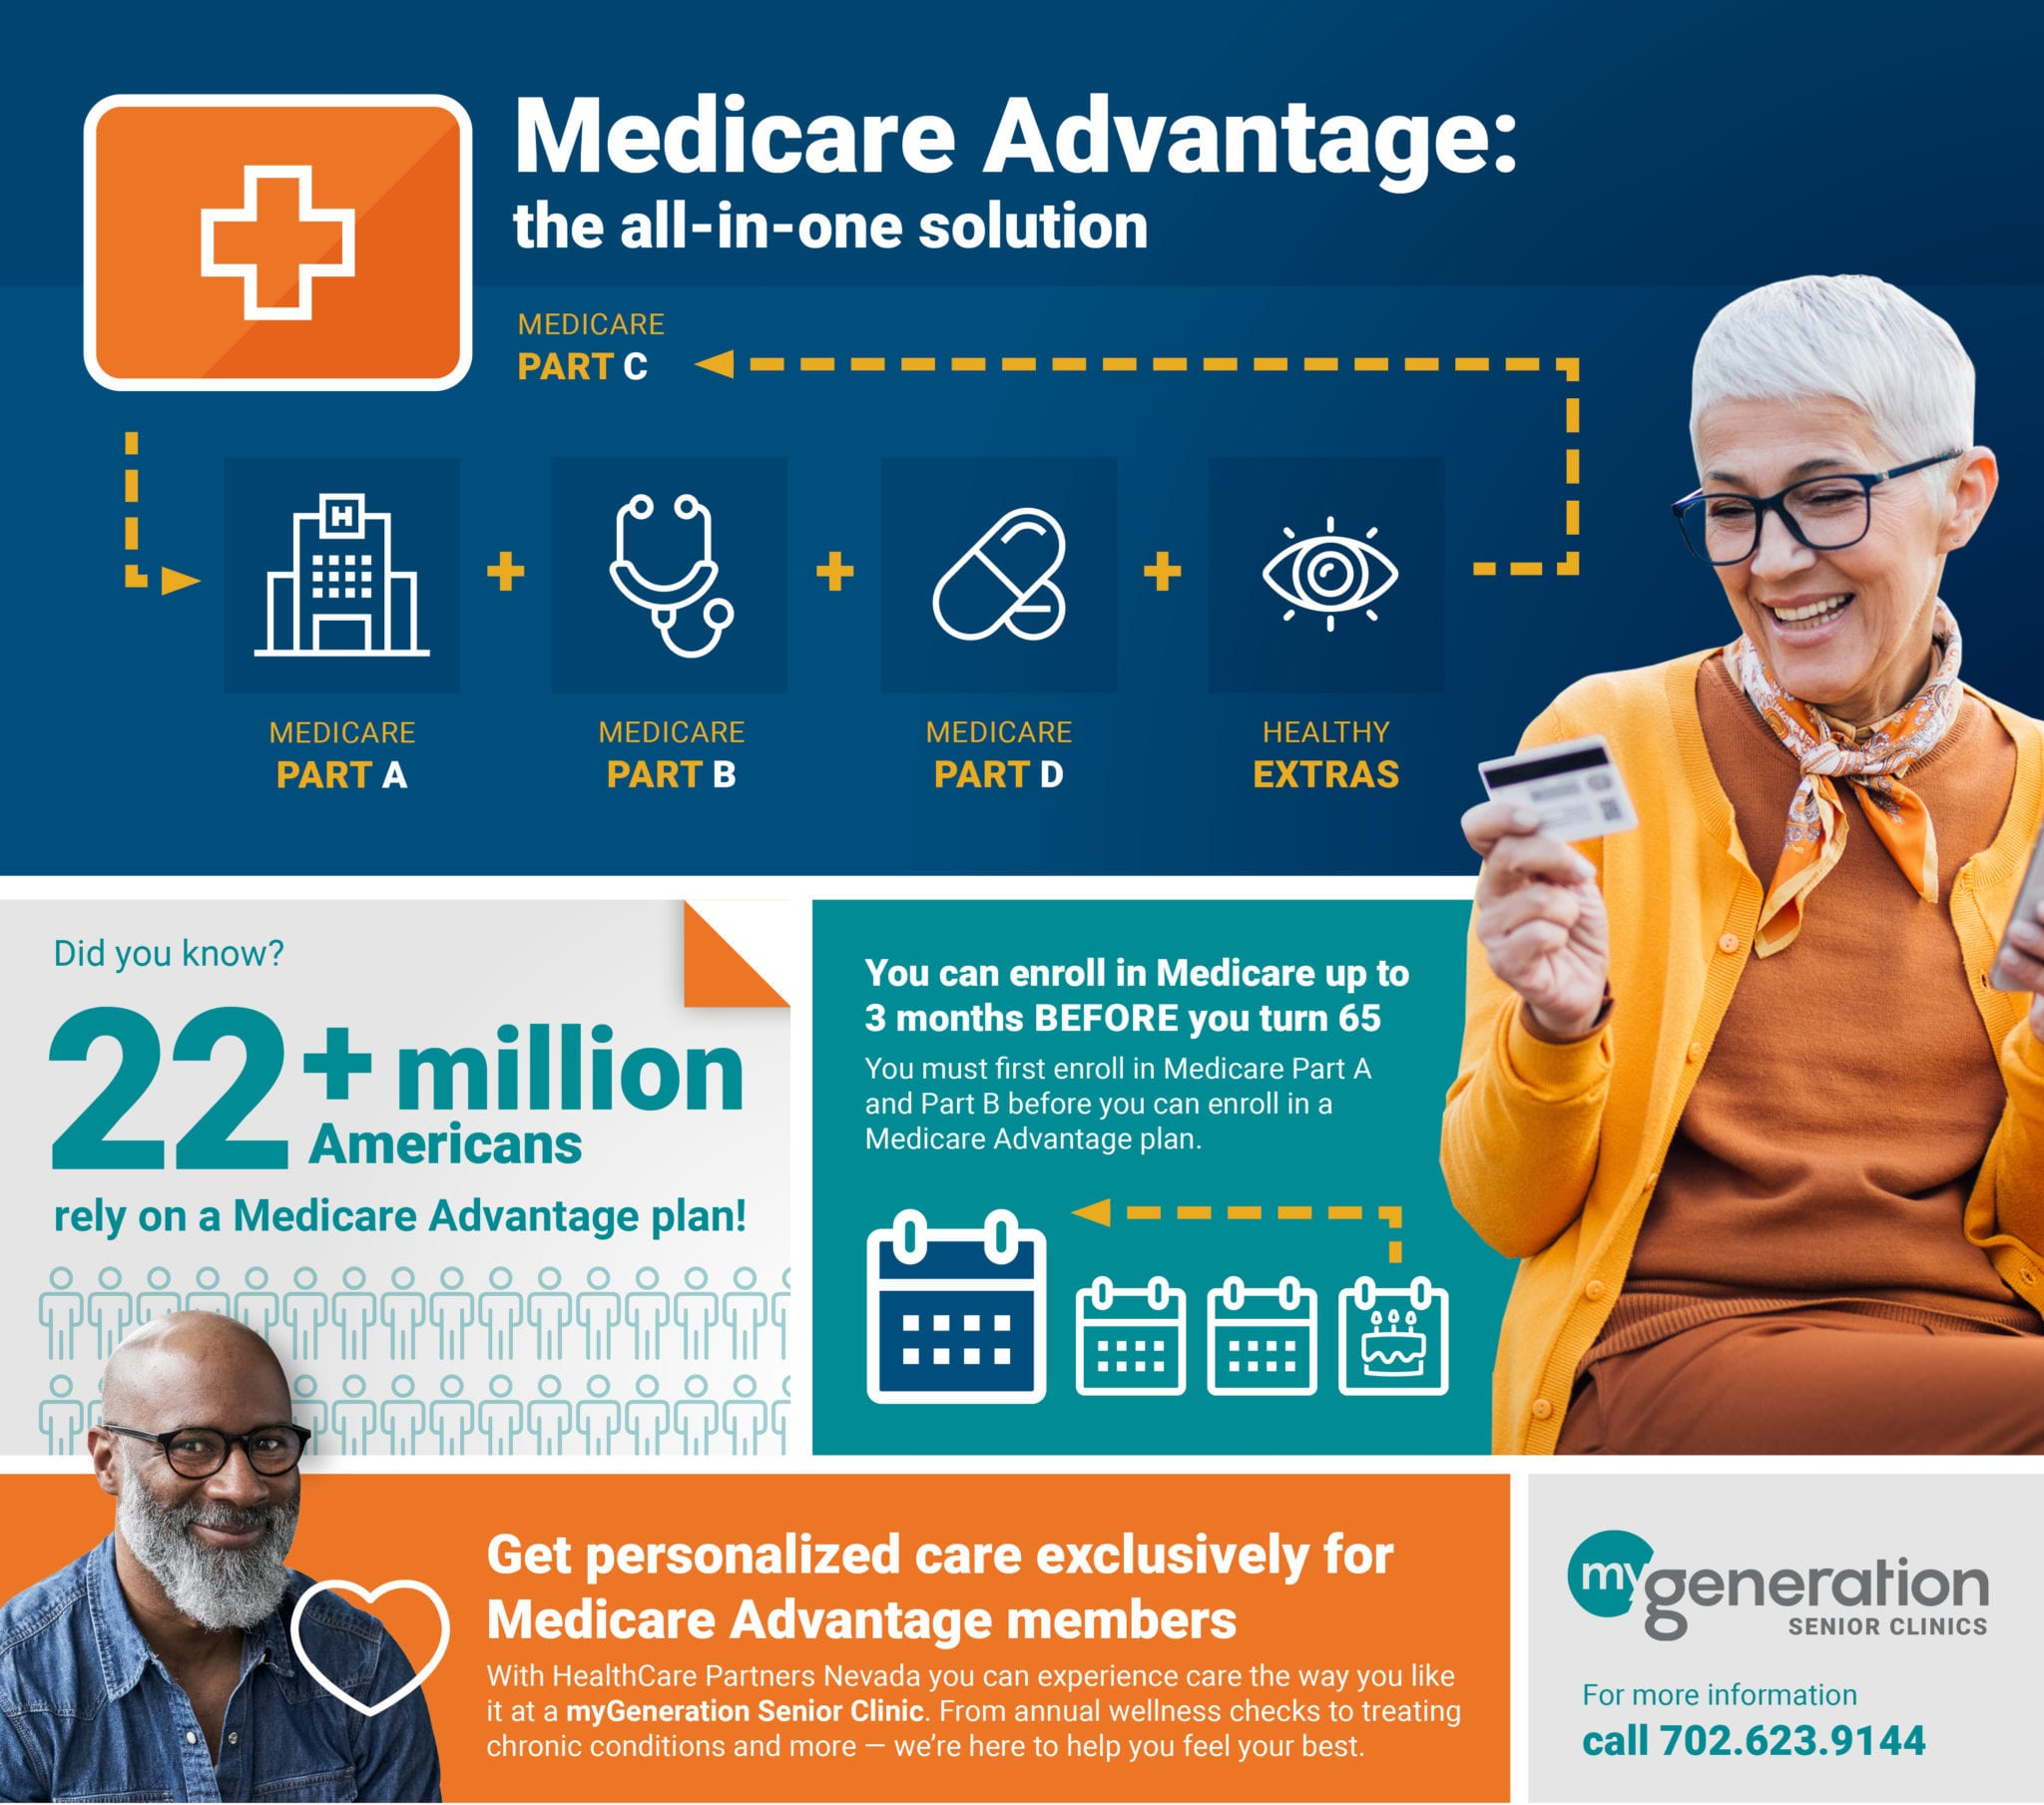 Infographic providing an overview on useful Medicare Advantage plan information